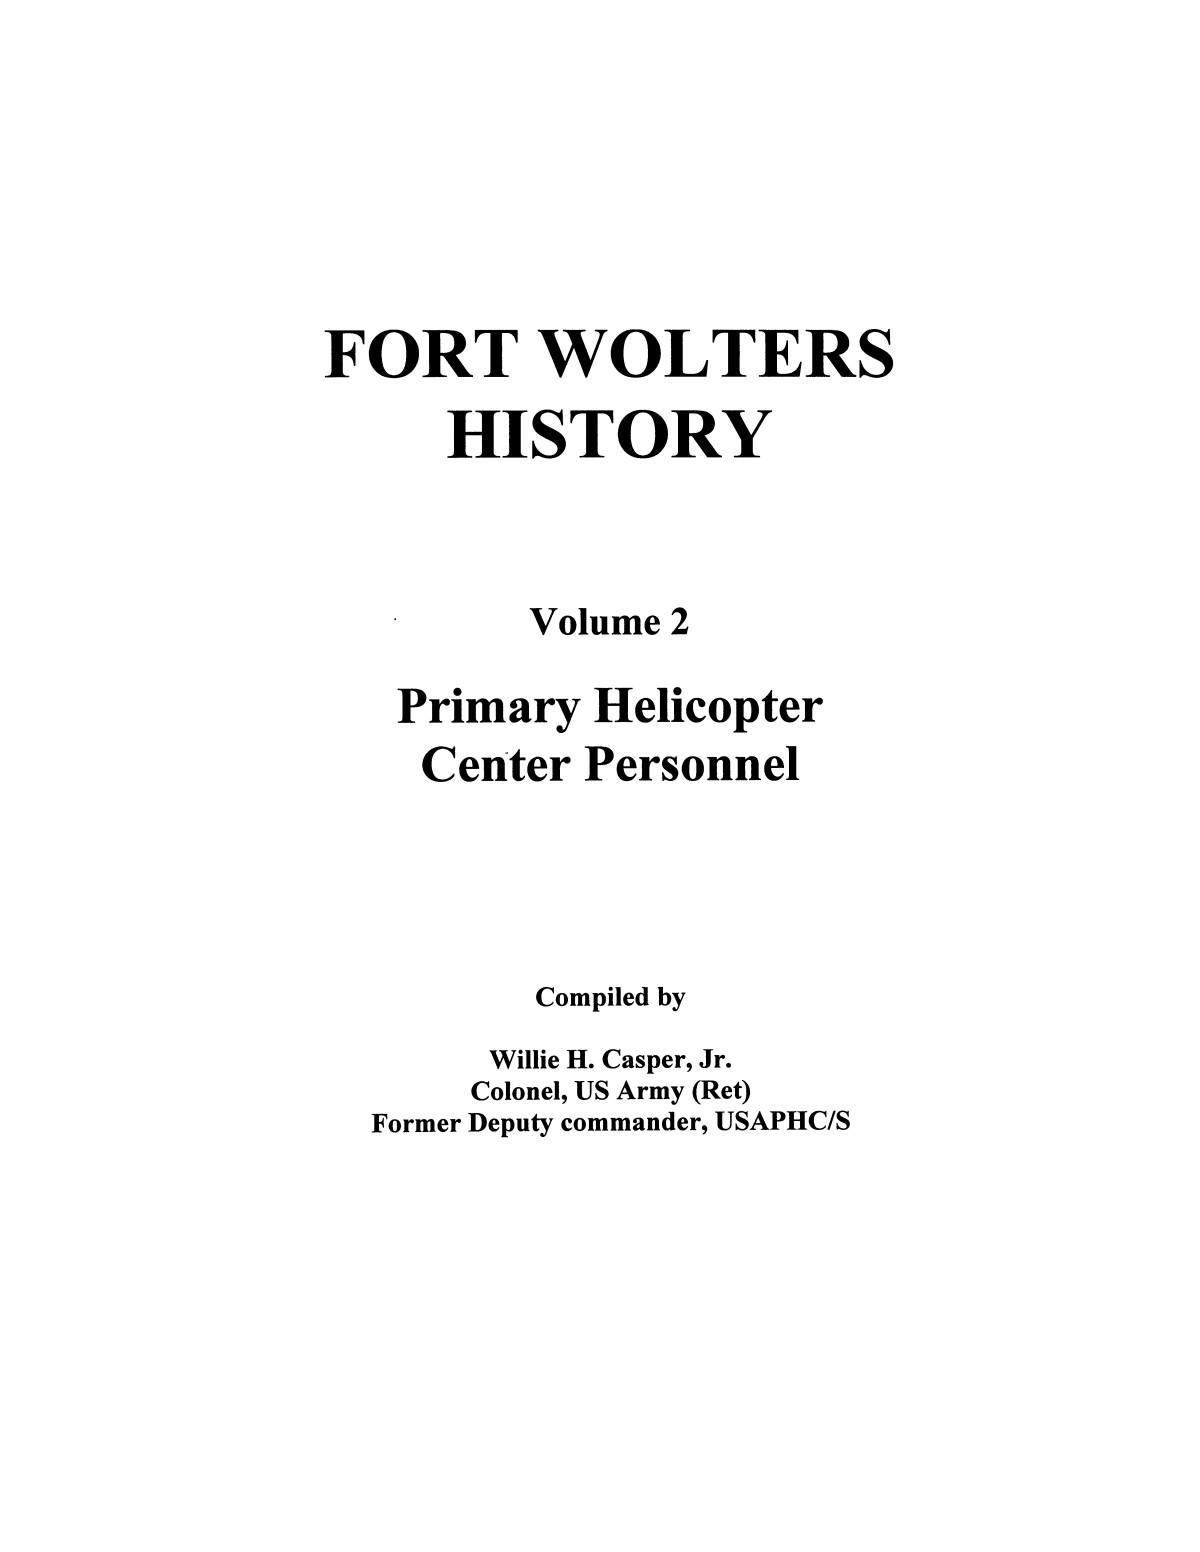 Pictorial History of Fort Wolters, Volume 2: Primary Helicopter Center Personnel                                                                                                      [Sequence #]: 1 of 204